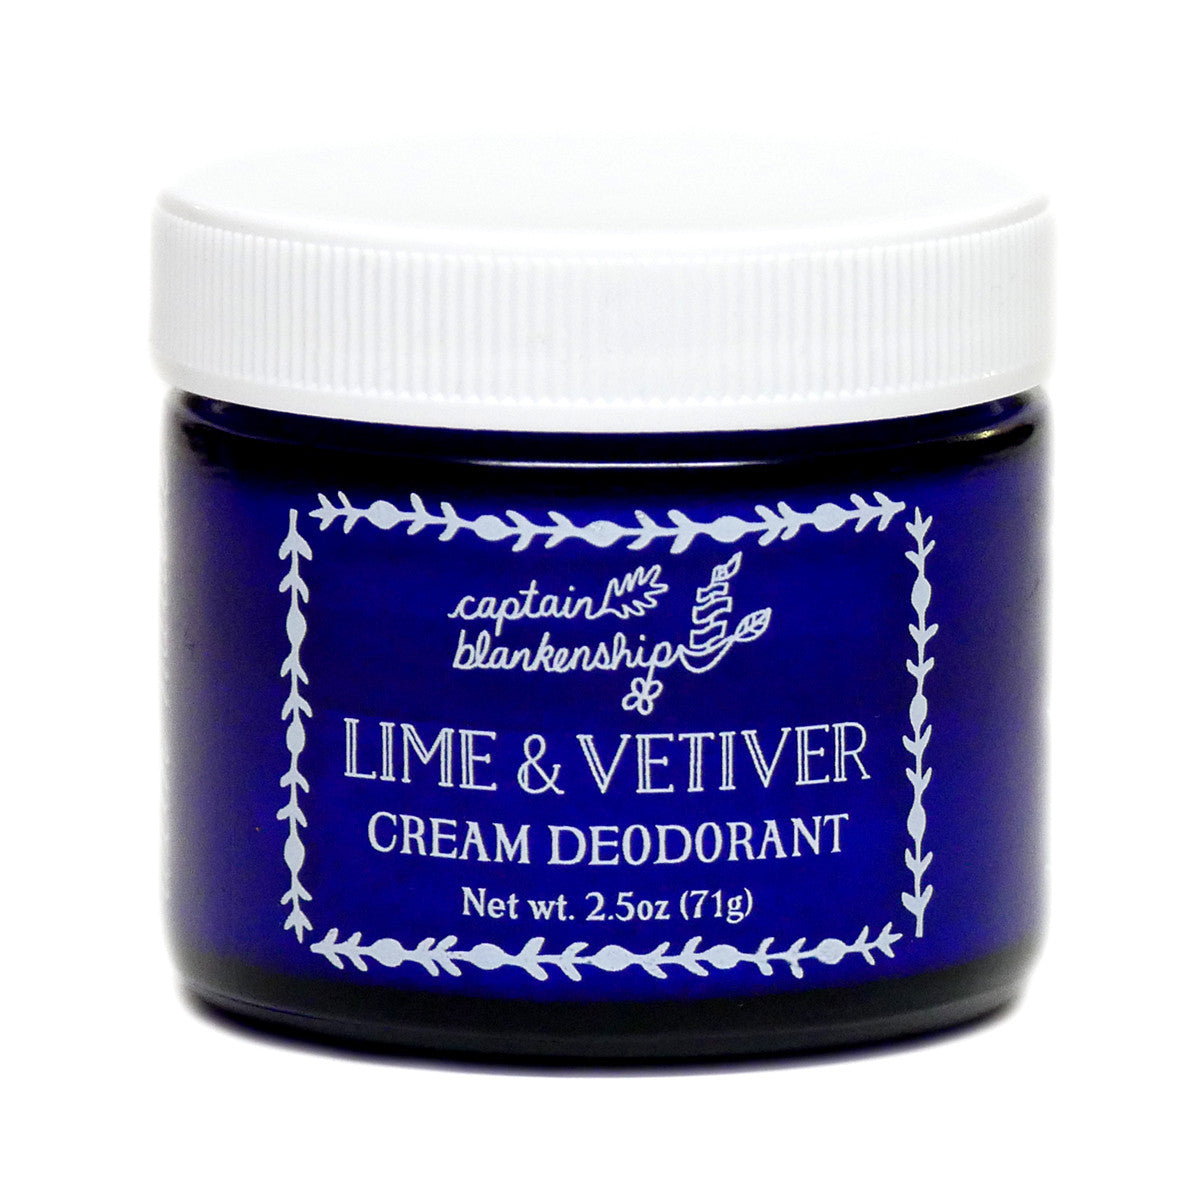 Lime Vetiver cream deodorant